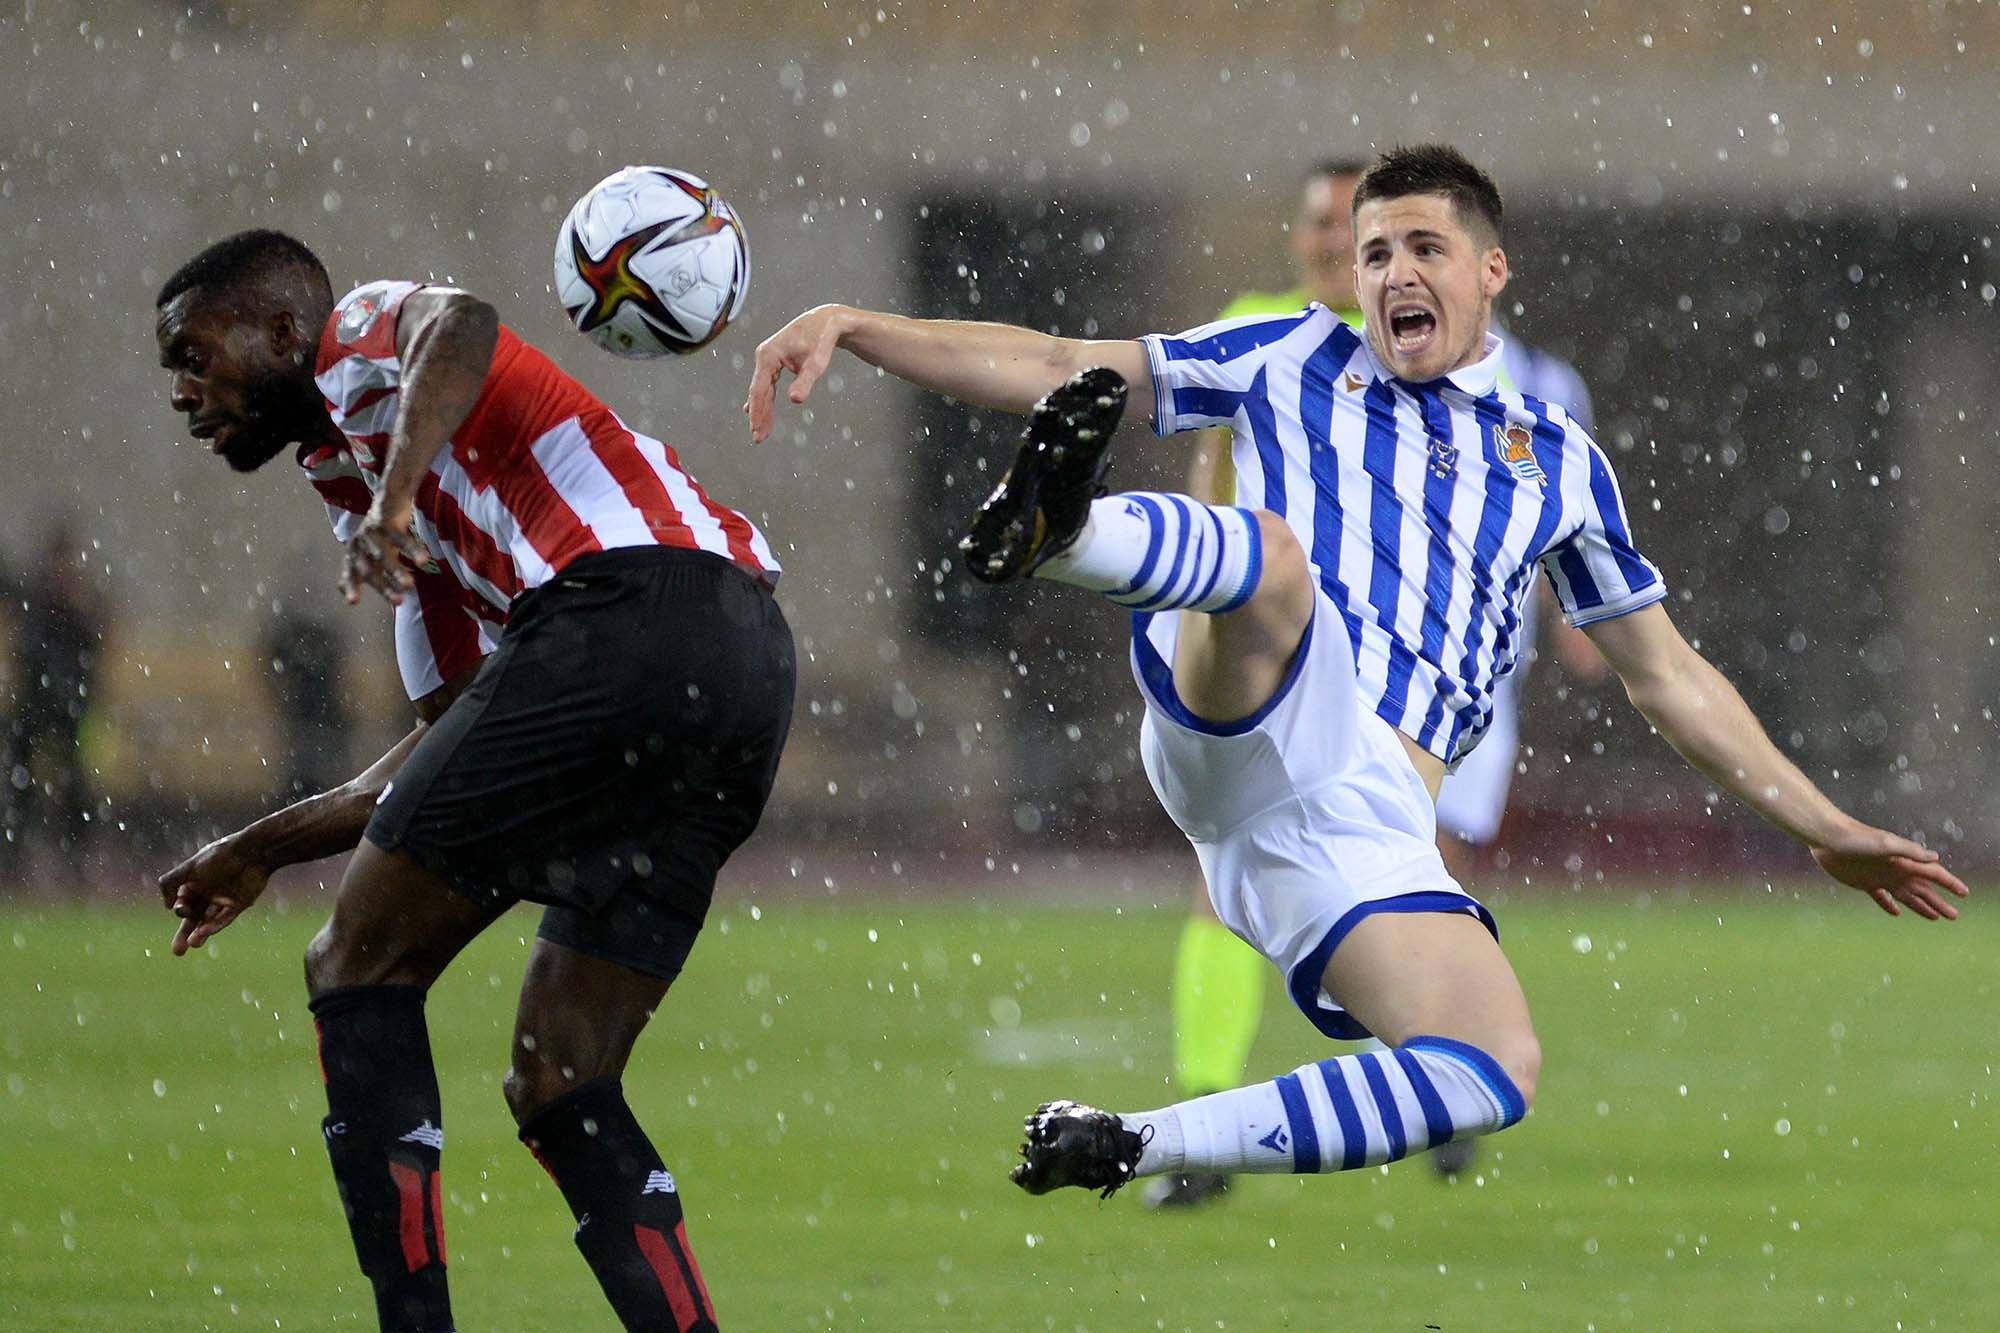 The year of two Copa del Rey finals: Athletic Bilbao loses first, but has second chance against FC Barcelona